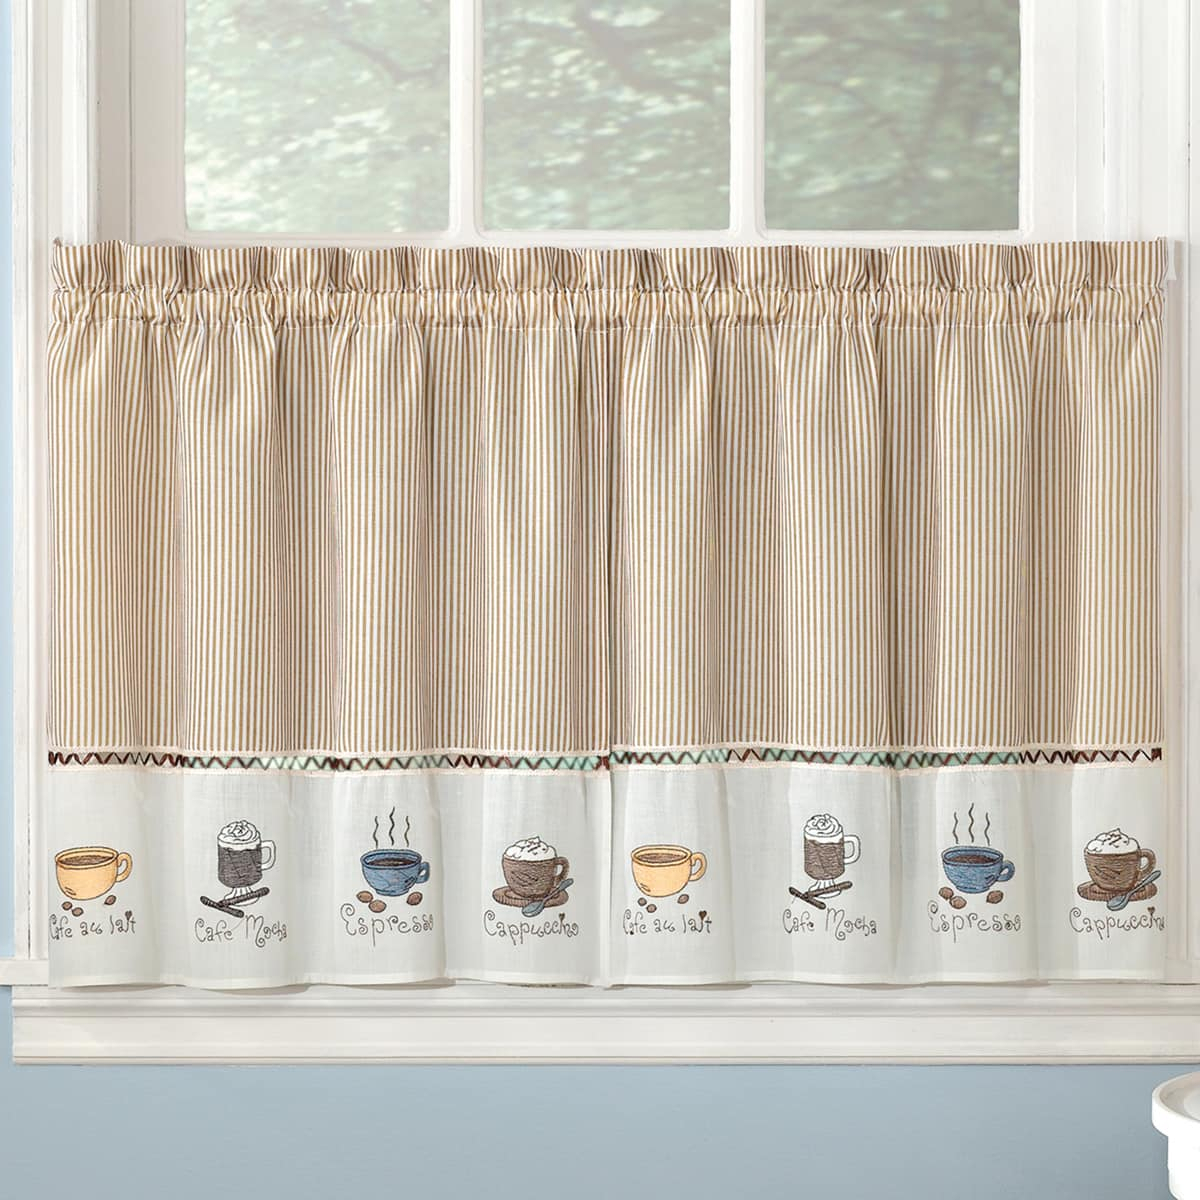 Bed Bath N More Favorite Coffee Drinks Embroidered Window Treatments Valance And Tiers Intended For Coffee Drinks Embroidered Window Valances And Tiers (View 3 of 20)